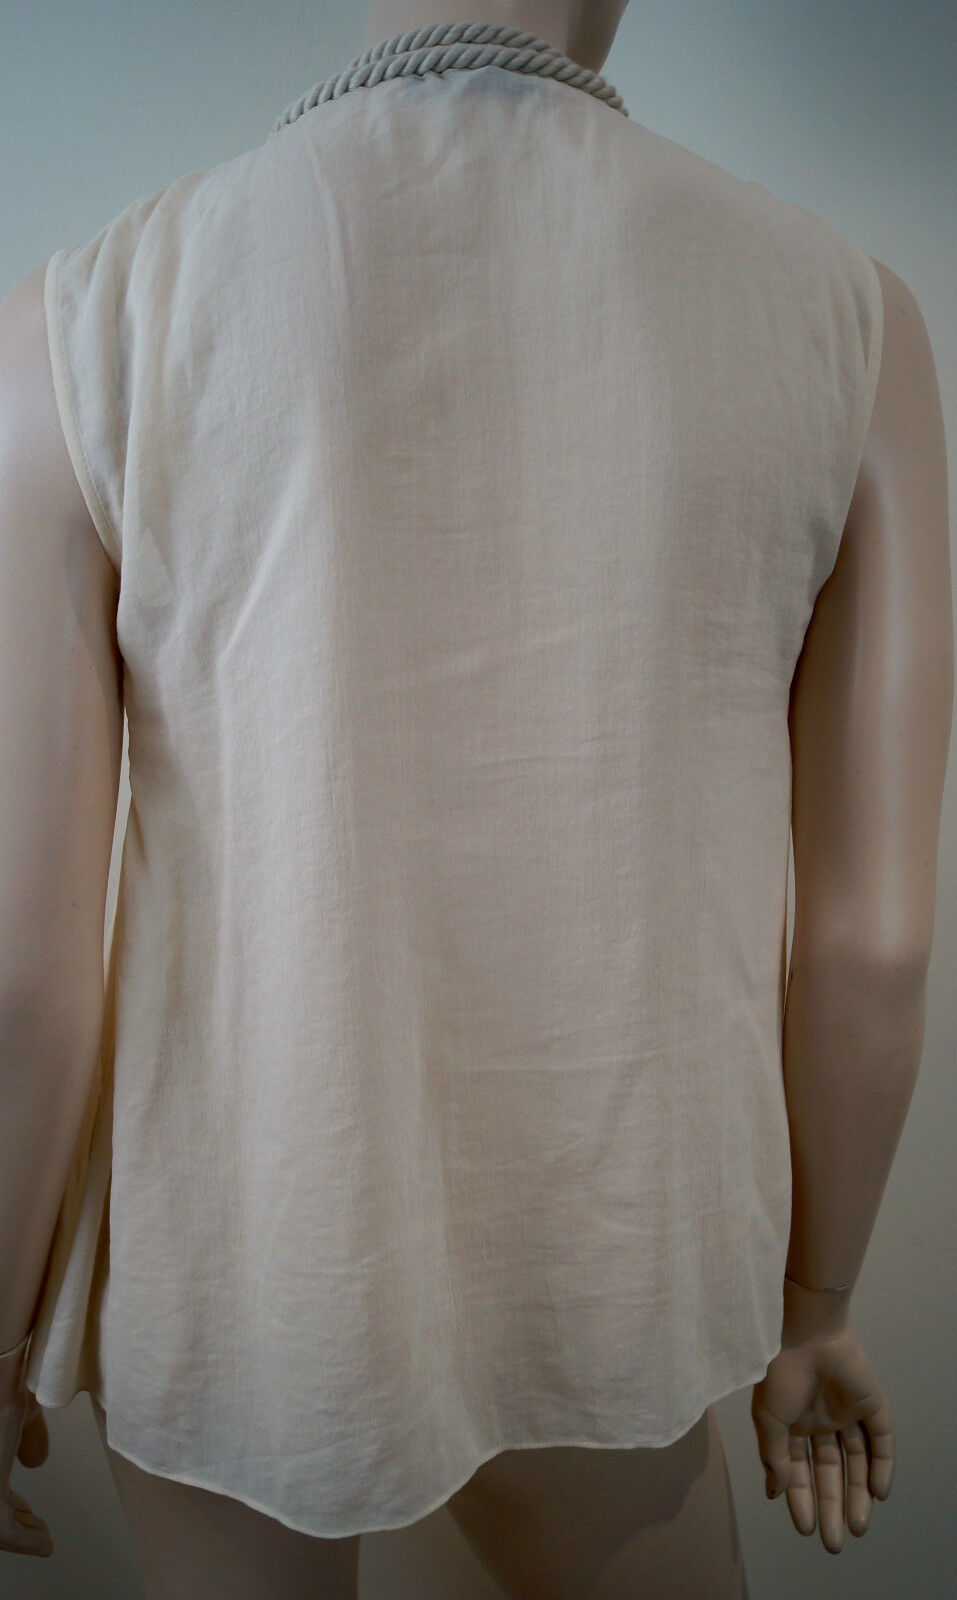 STELLA MCCARTNEY Crema Beige Cotton & Silk Rope & & & Cubo Collo Senza Maniche Top 40 12 11014e